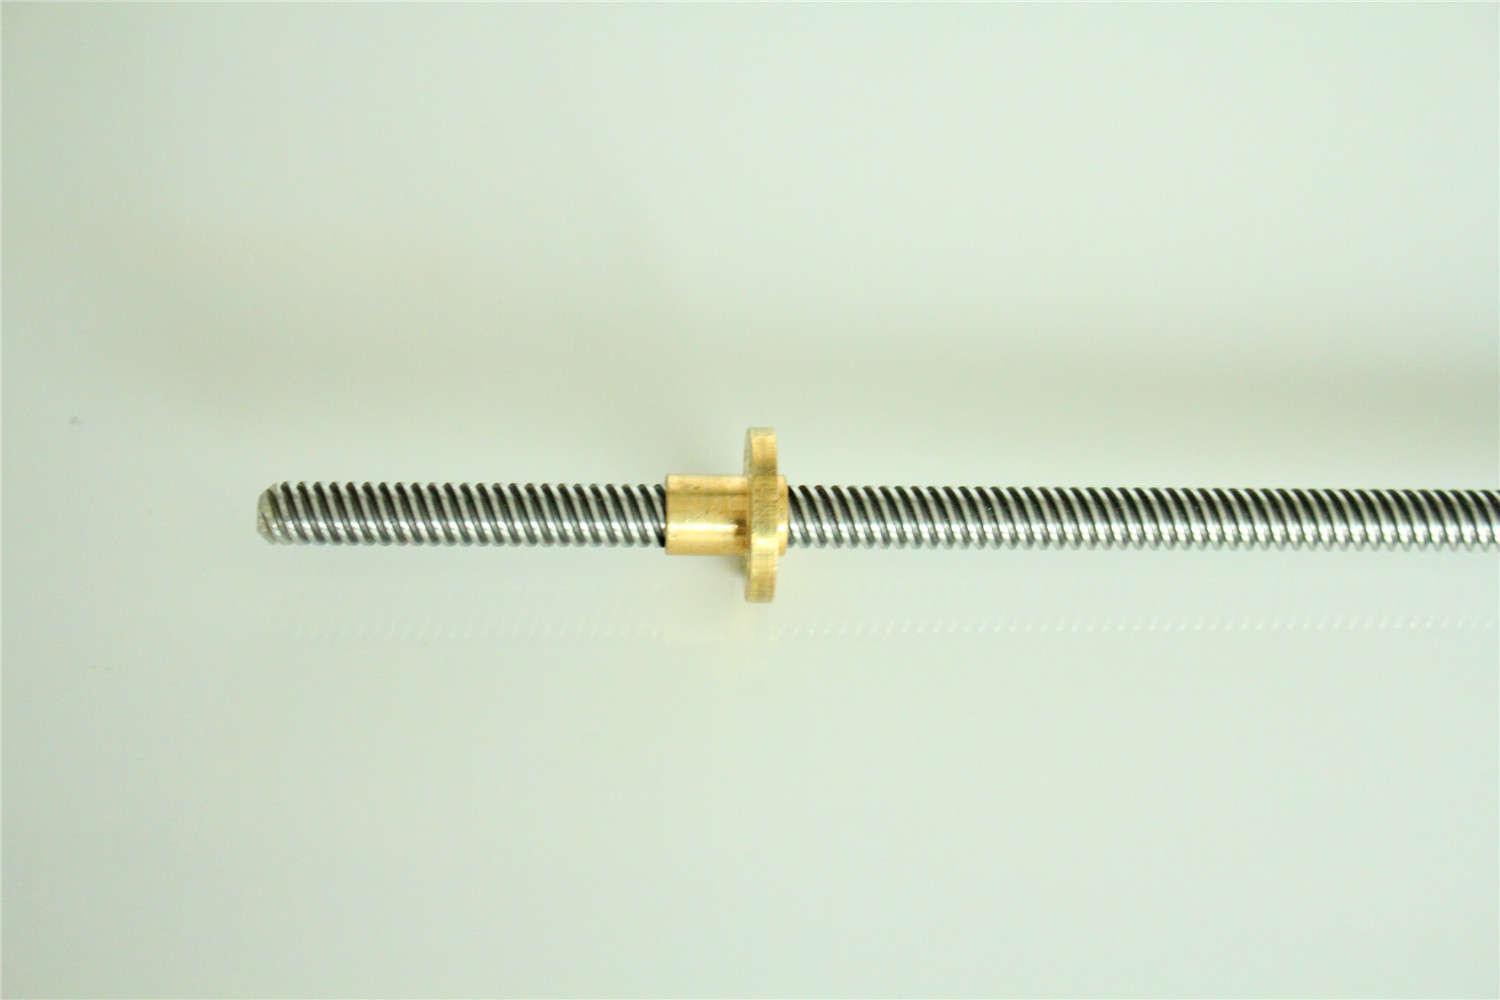 T8 Lead Screw OD 8mm Pitch 2mm Lead 4mm 100 150 200 300 350 400 500 600 1000 1200 Mm With Brass Nut For CNC 3D Printer